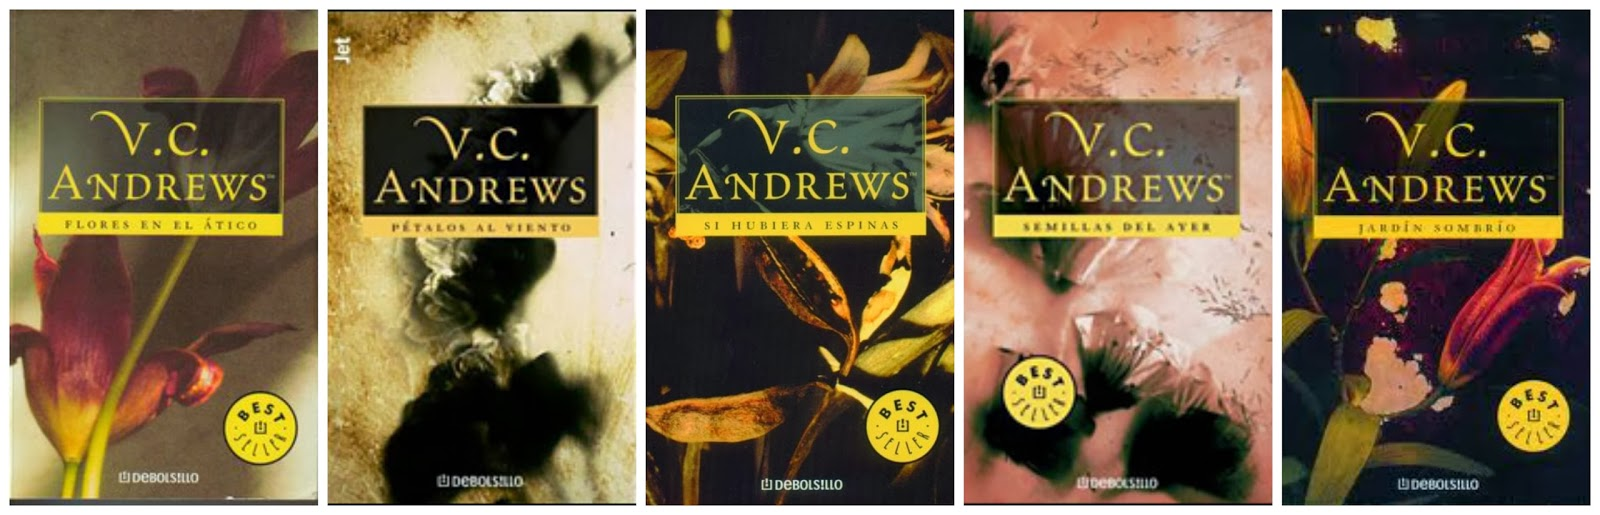 Dollanganger Vc Andrews 5 Book Set Collection Flowers In The Attic